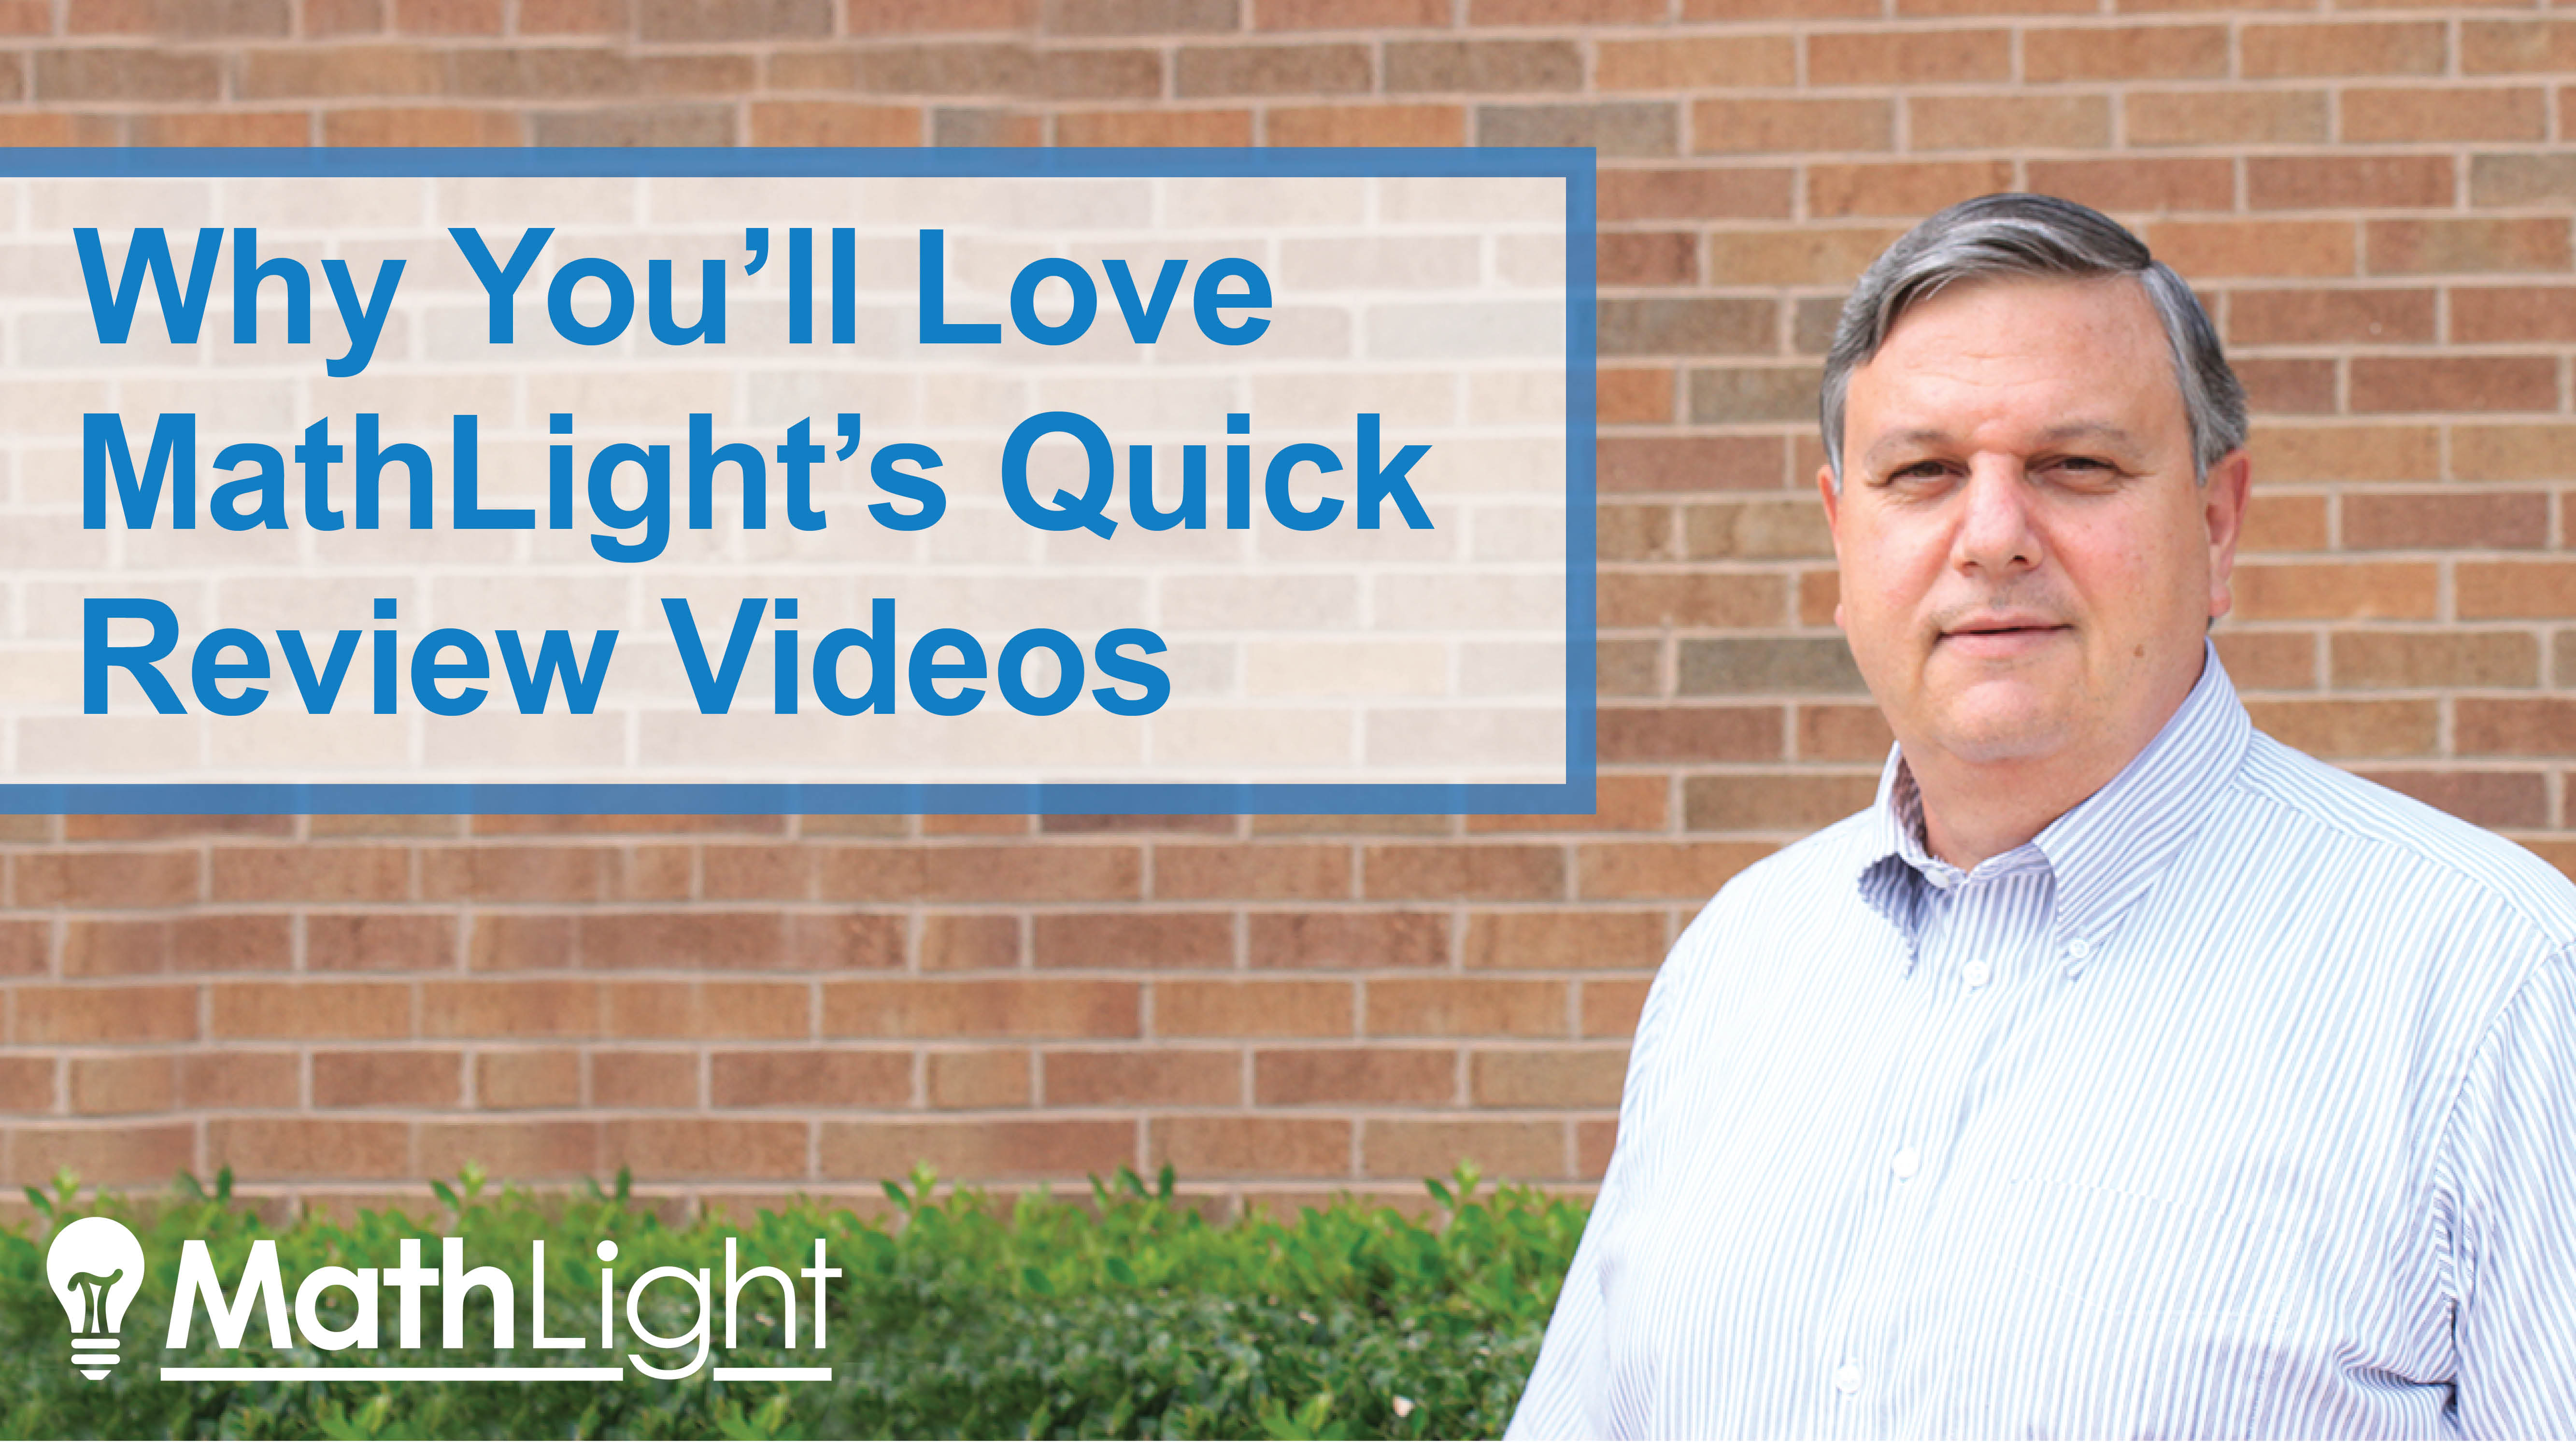 why you'll love mathlight's quick review videos